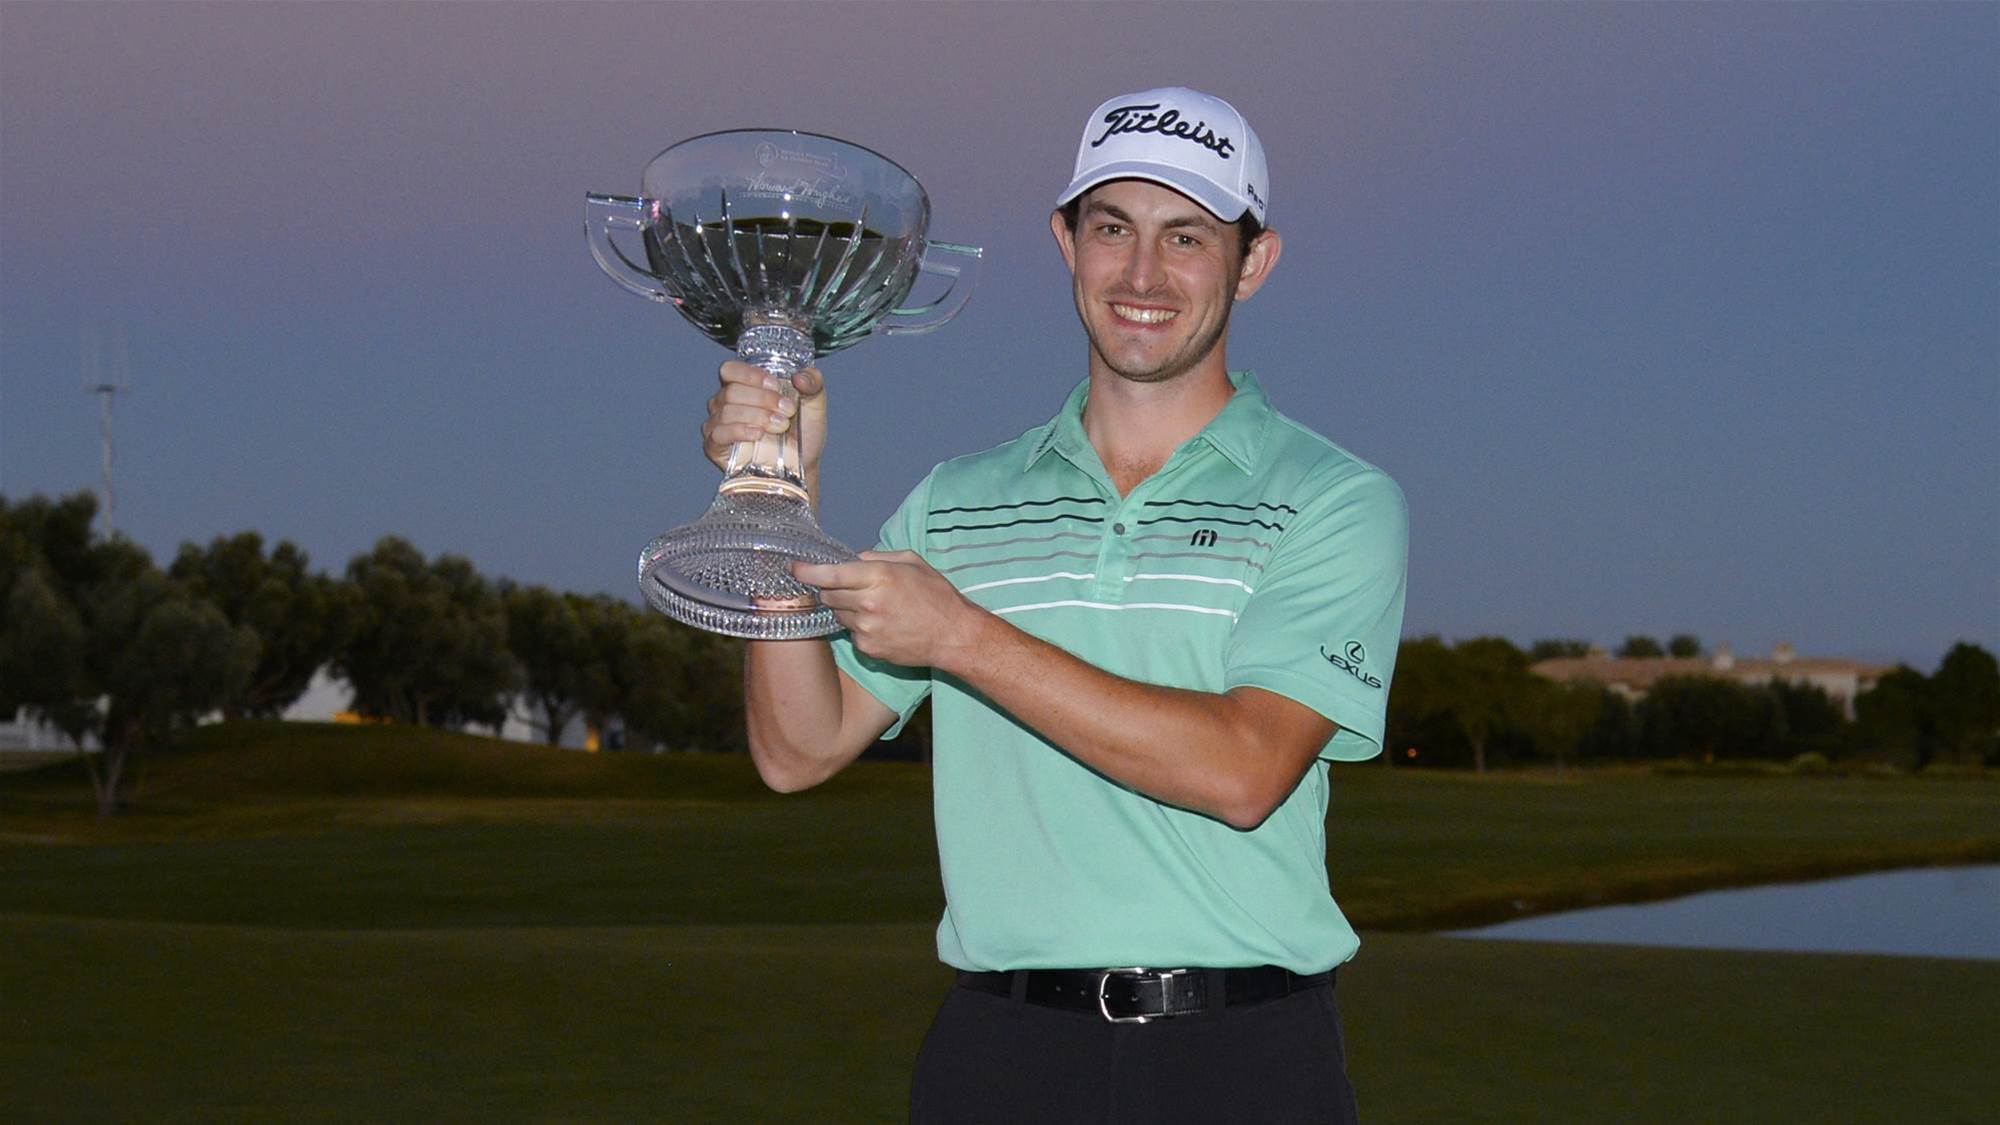 PGA TOUR: Cantlay the last man standing in Vegas